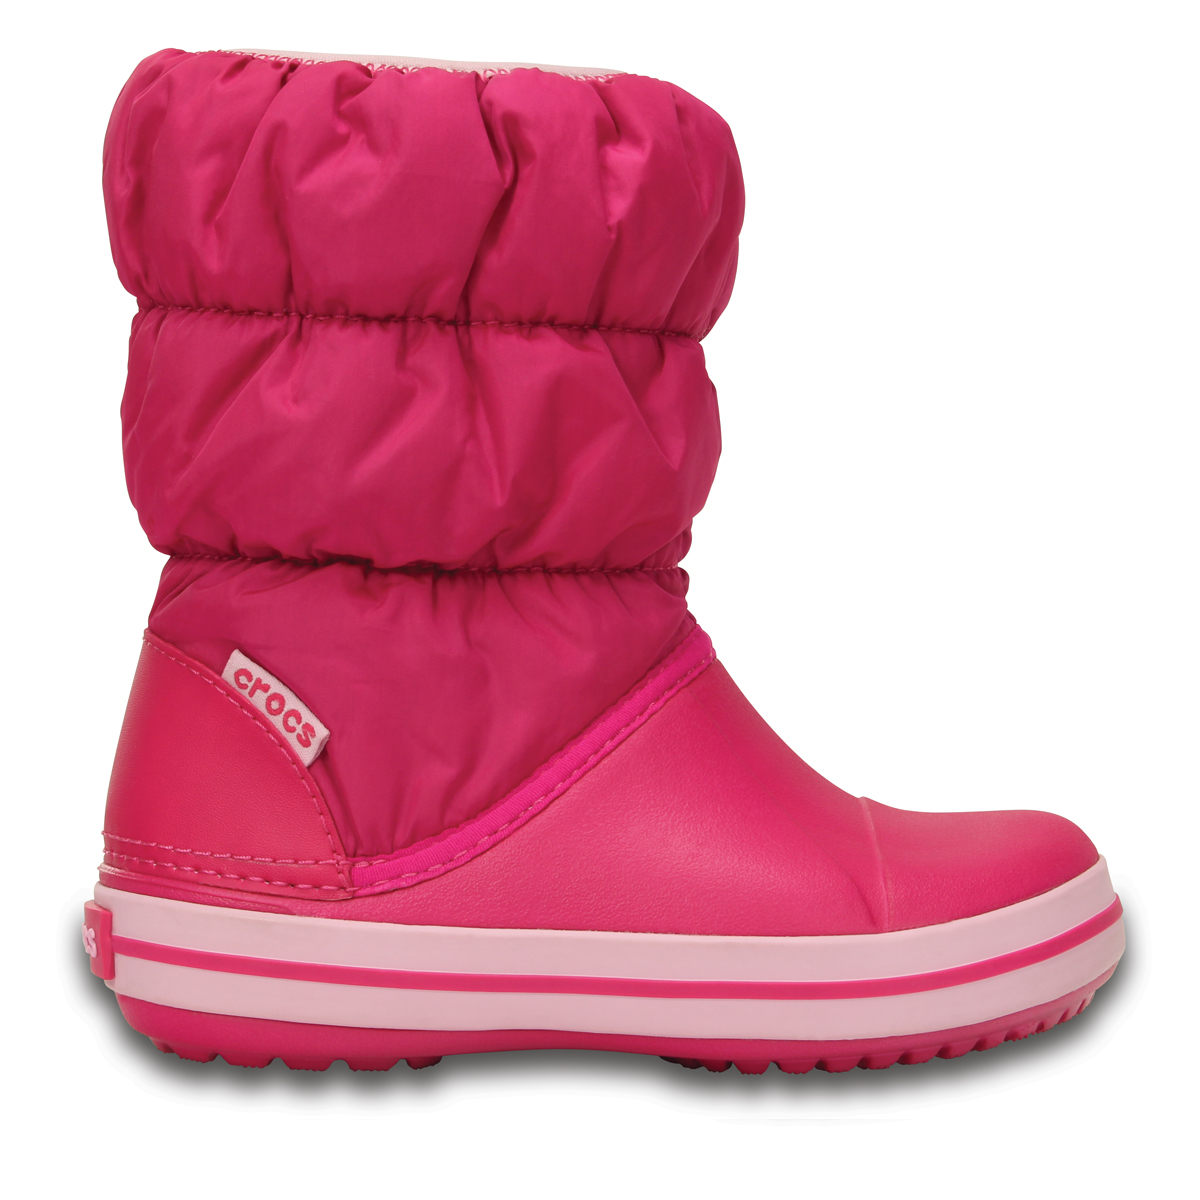 Winter Puff Boot Kids - Şeker Pembesi